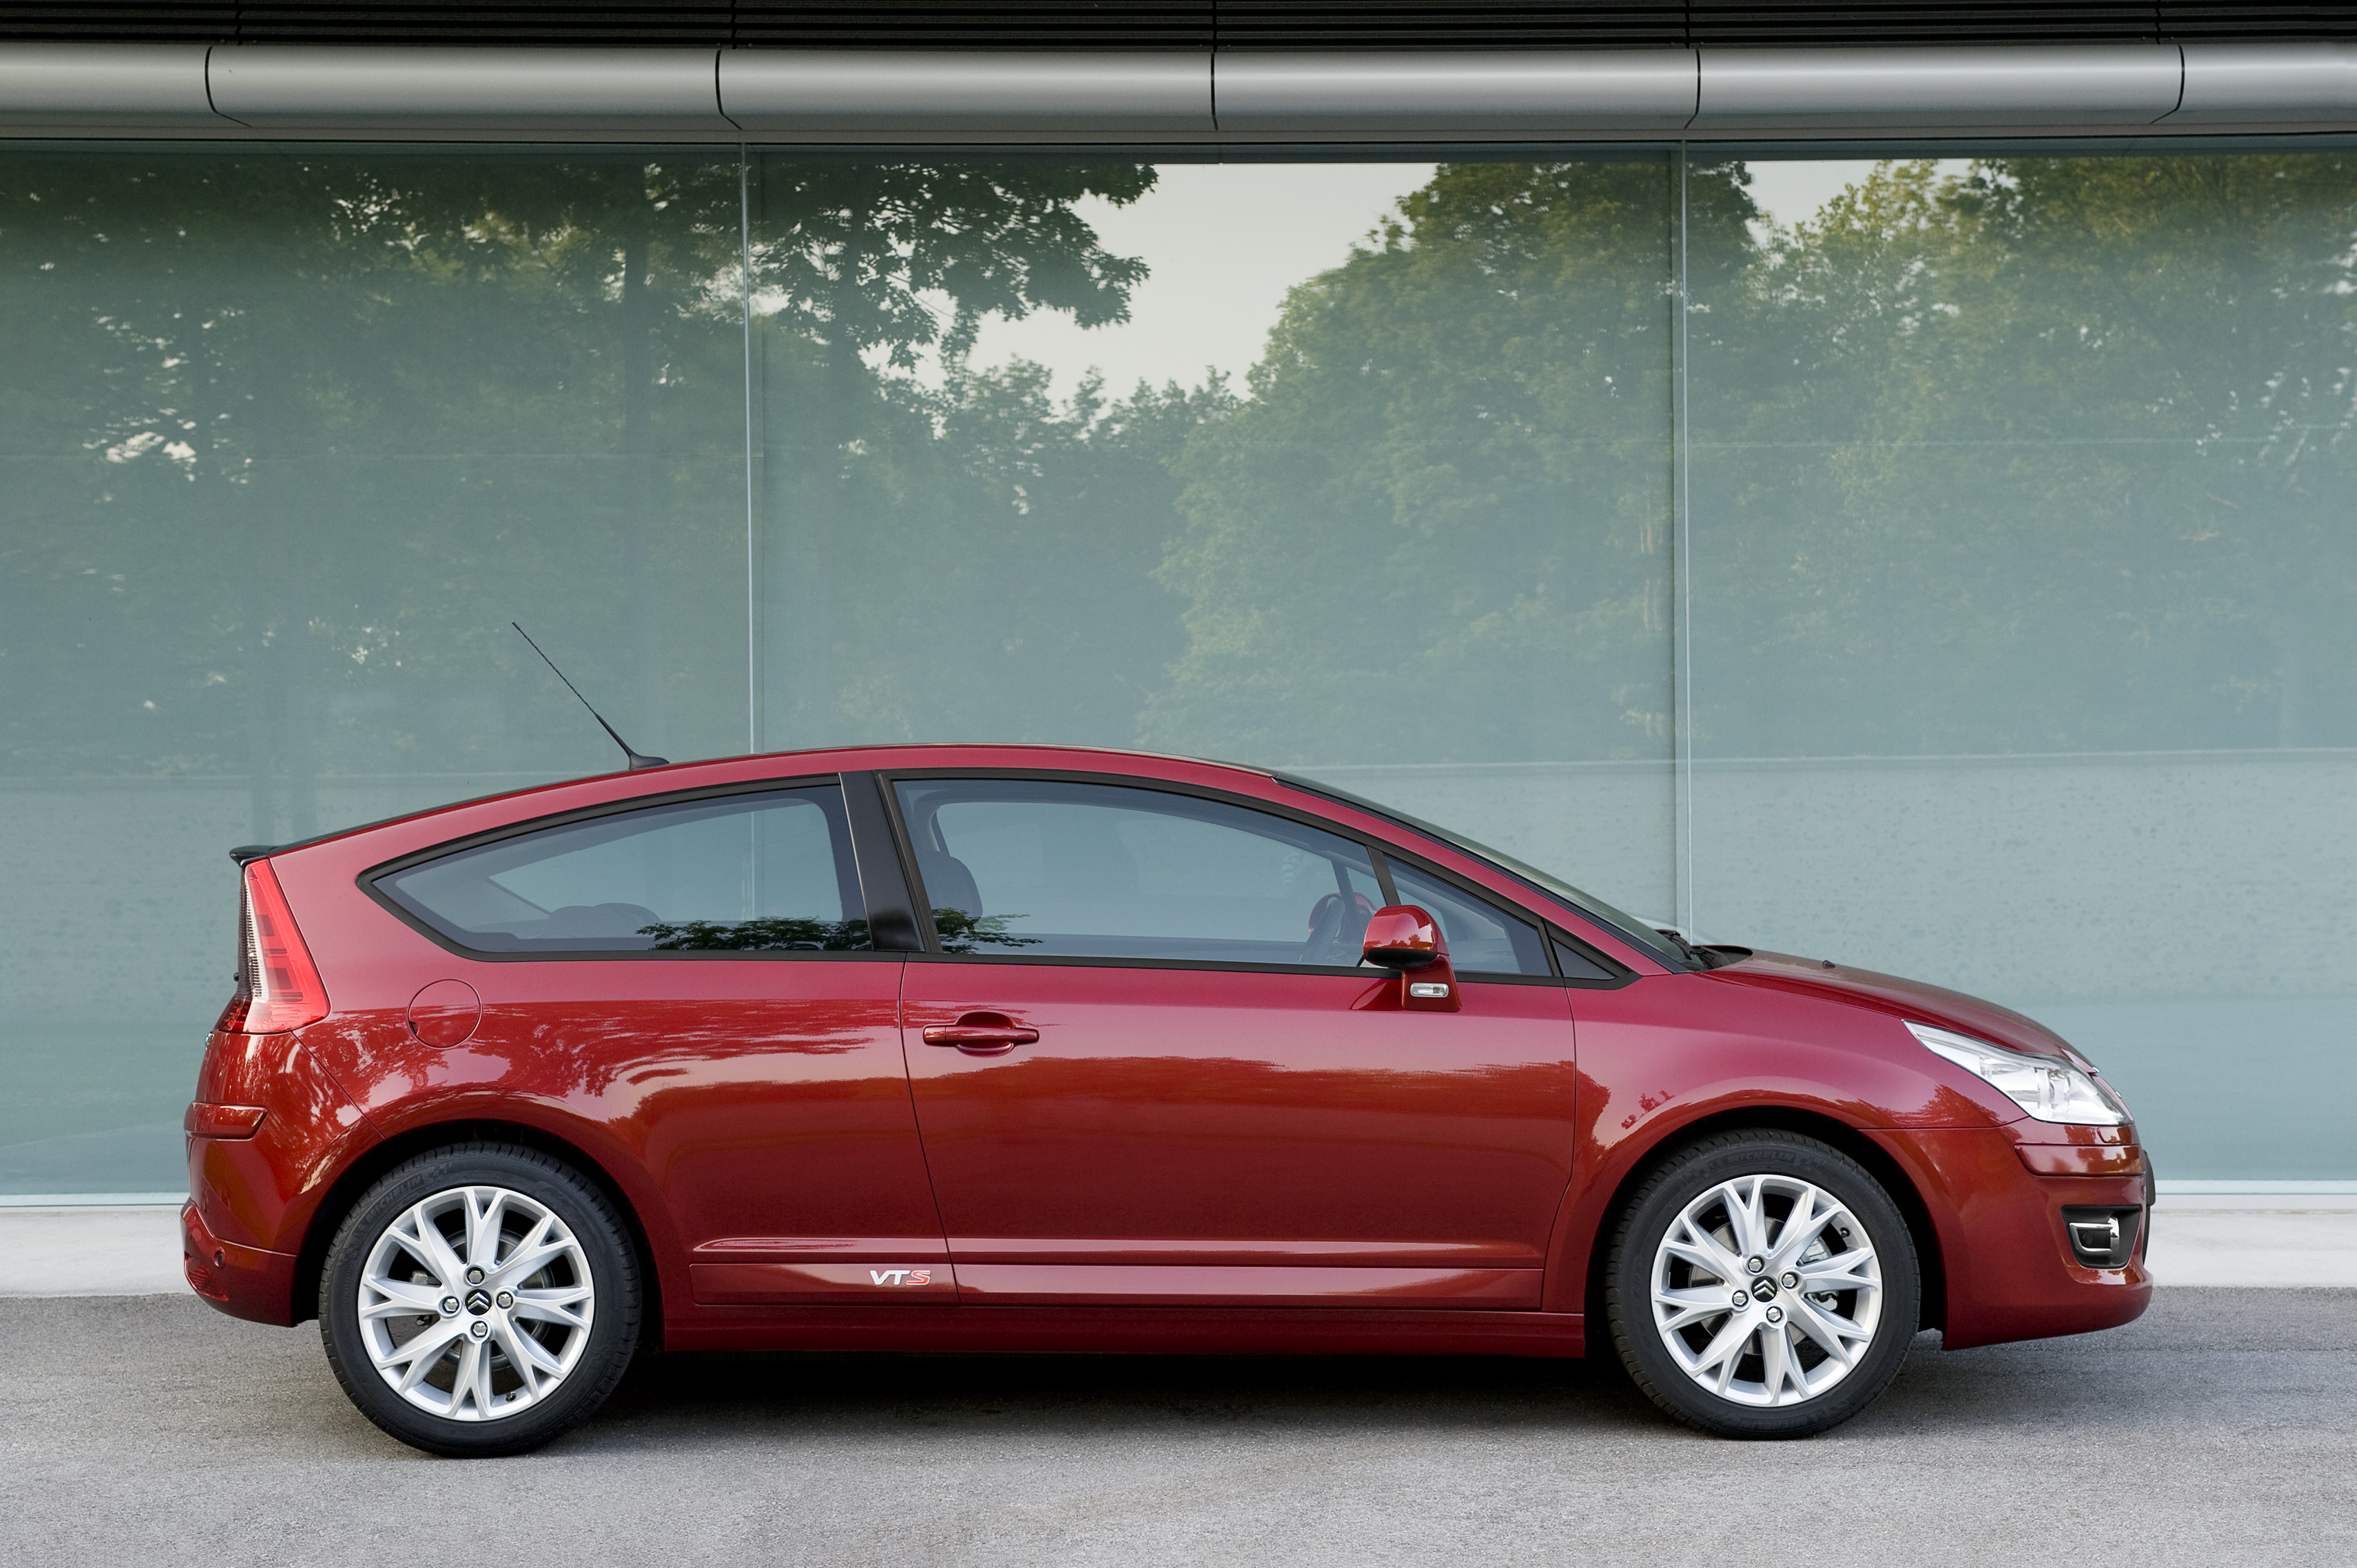 citroen c4 wallpaper